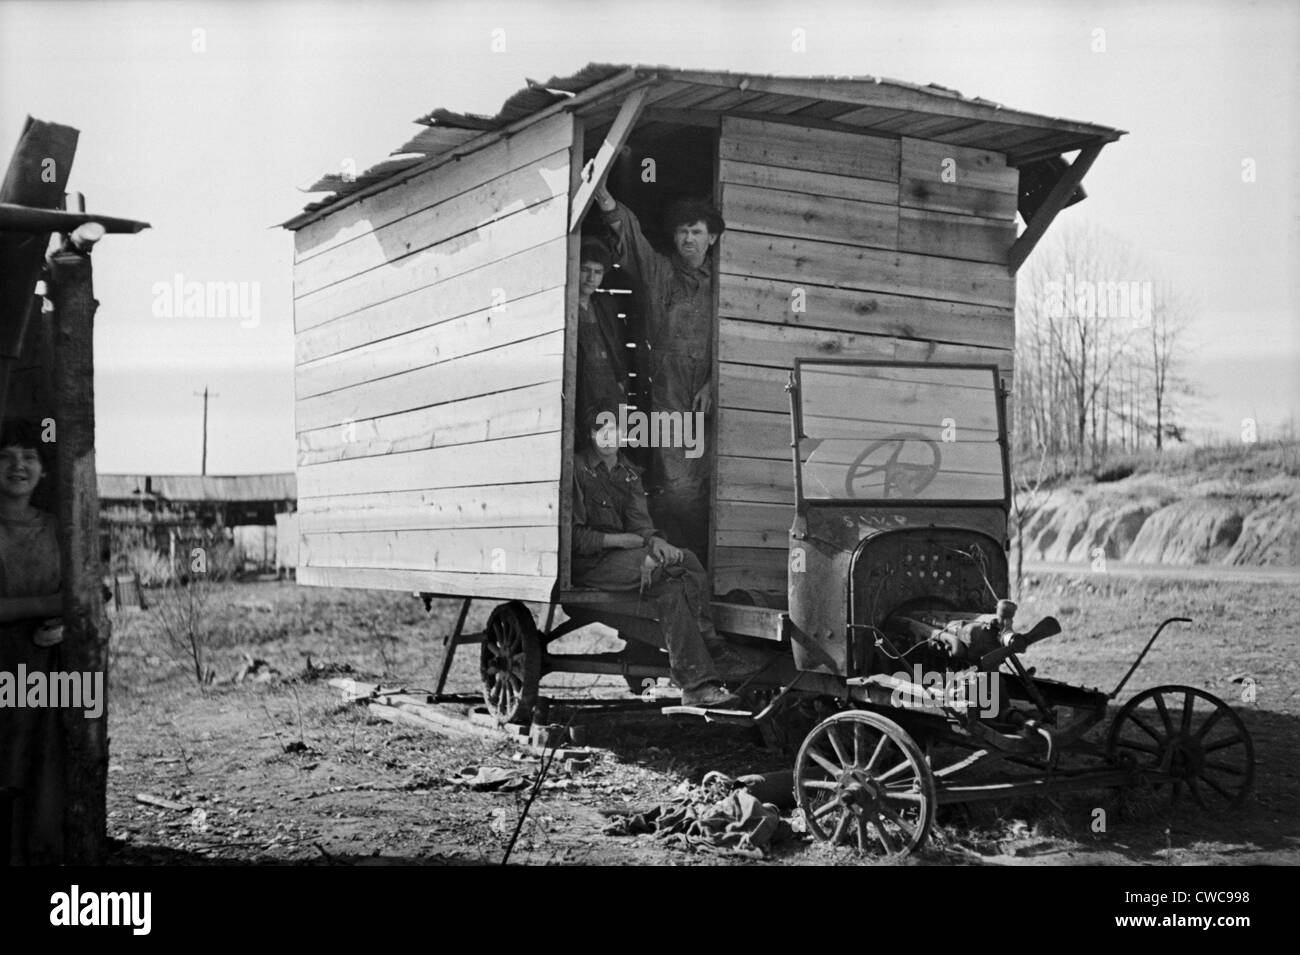 Three men stand in the entry of their shack home built on an old truck chassis. Between Camden and Bruceton Tennessee. - Stock Image